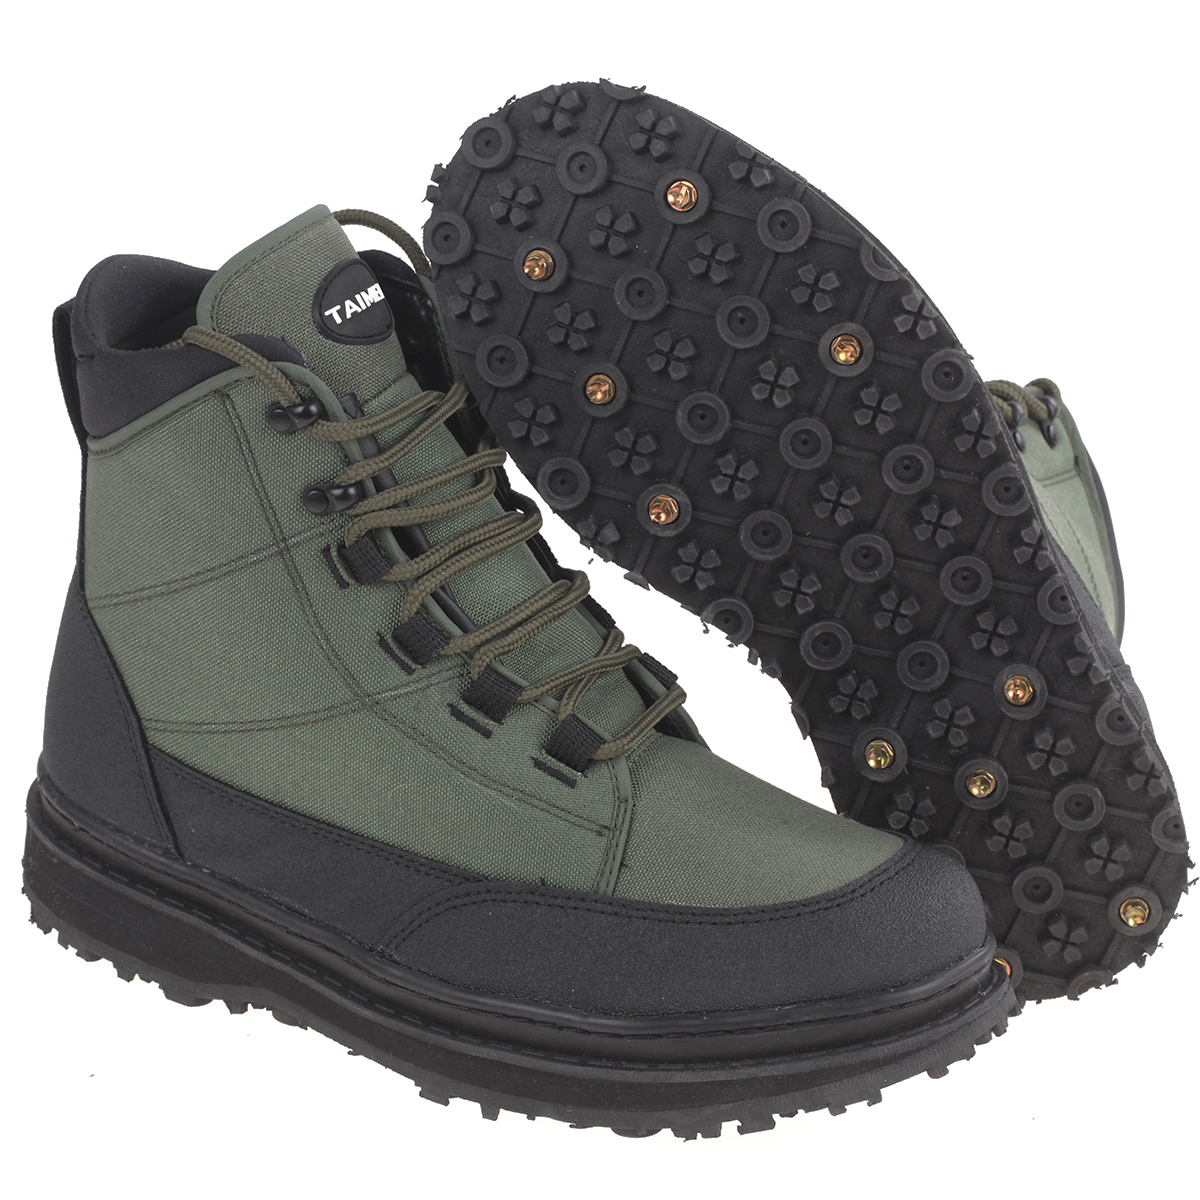 Taimen Sl Plus Wading Boots Rubber Sole 20 Studs Free